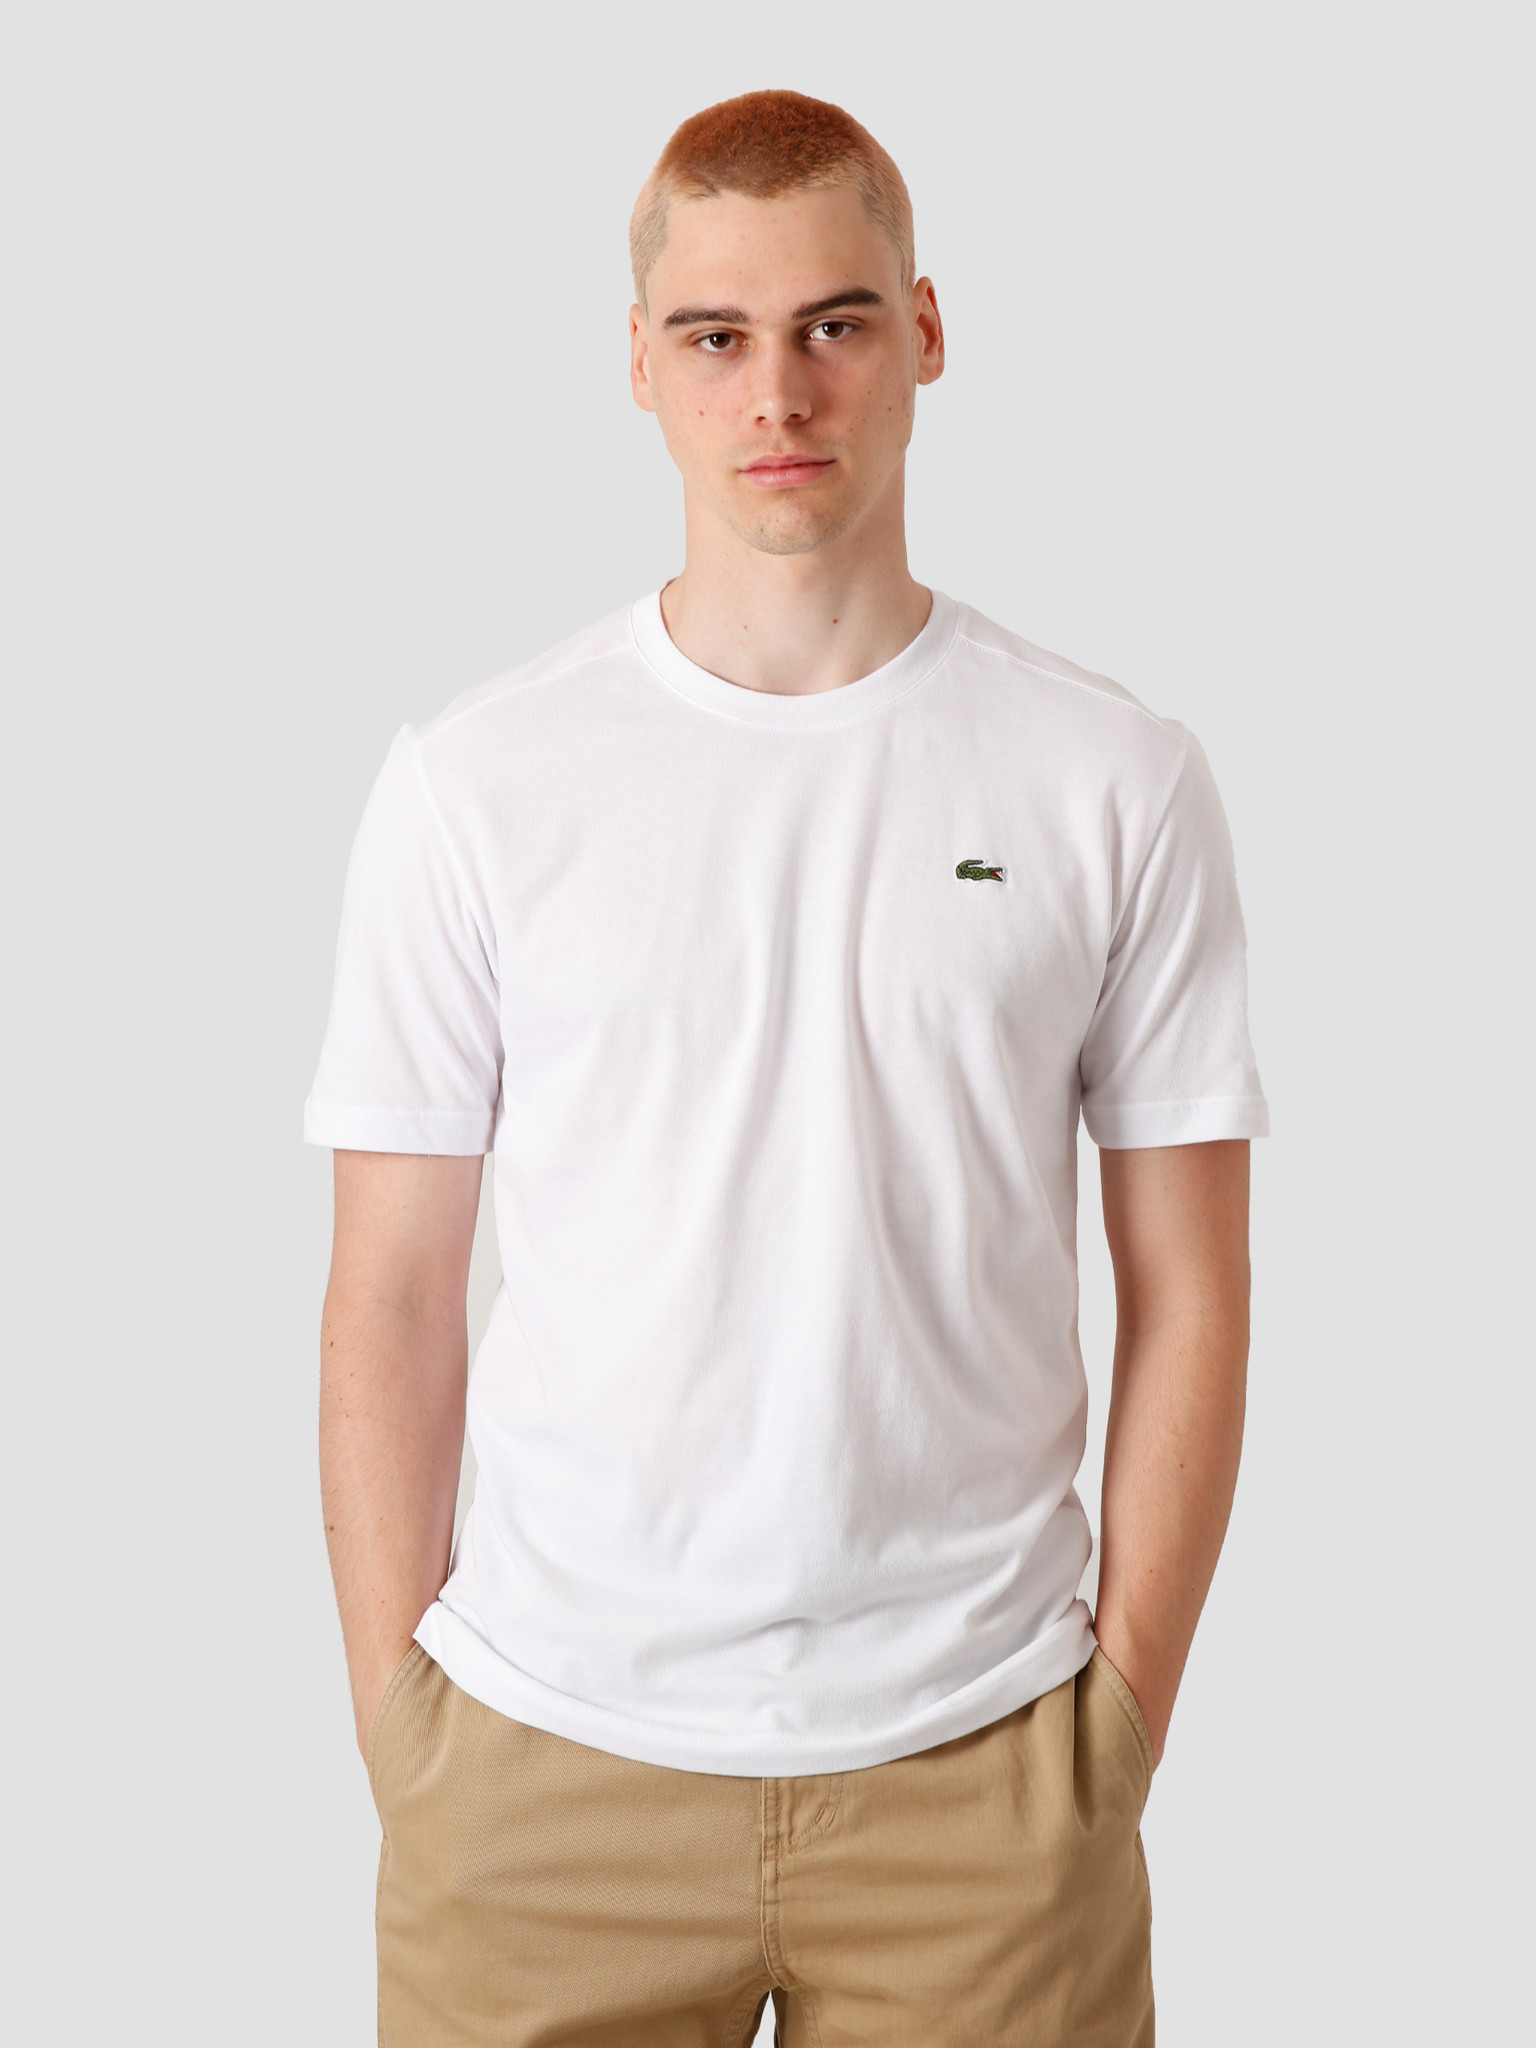 Lacoste Lacoste T-Shirt White TH761871-001